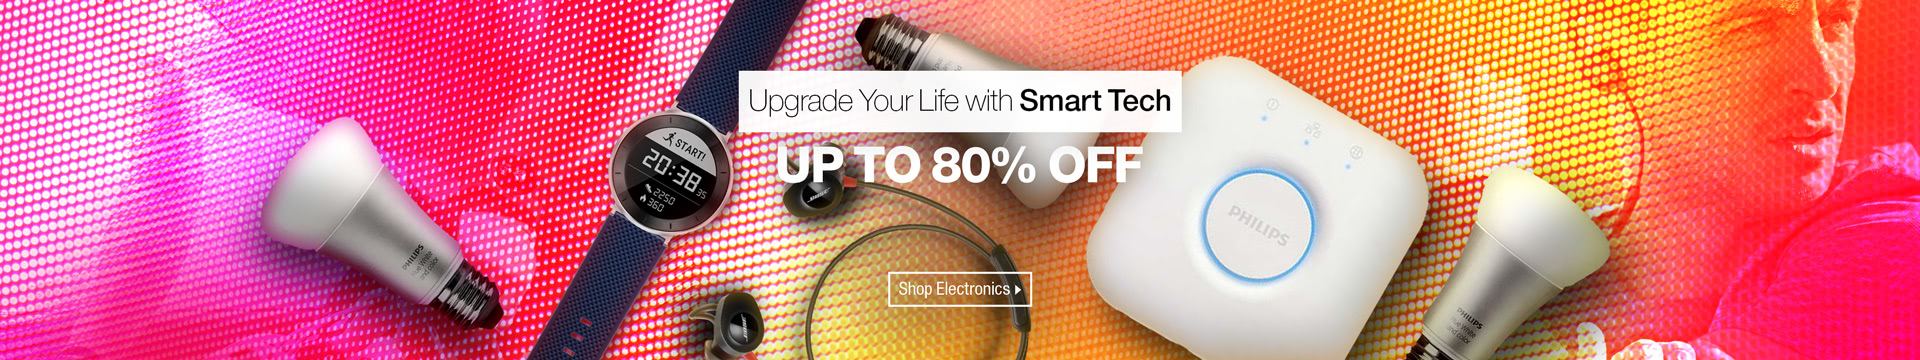 Upgrade your life with smart tech